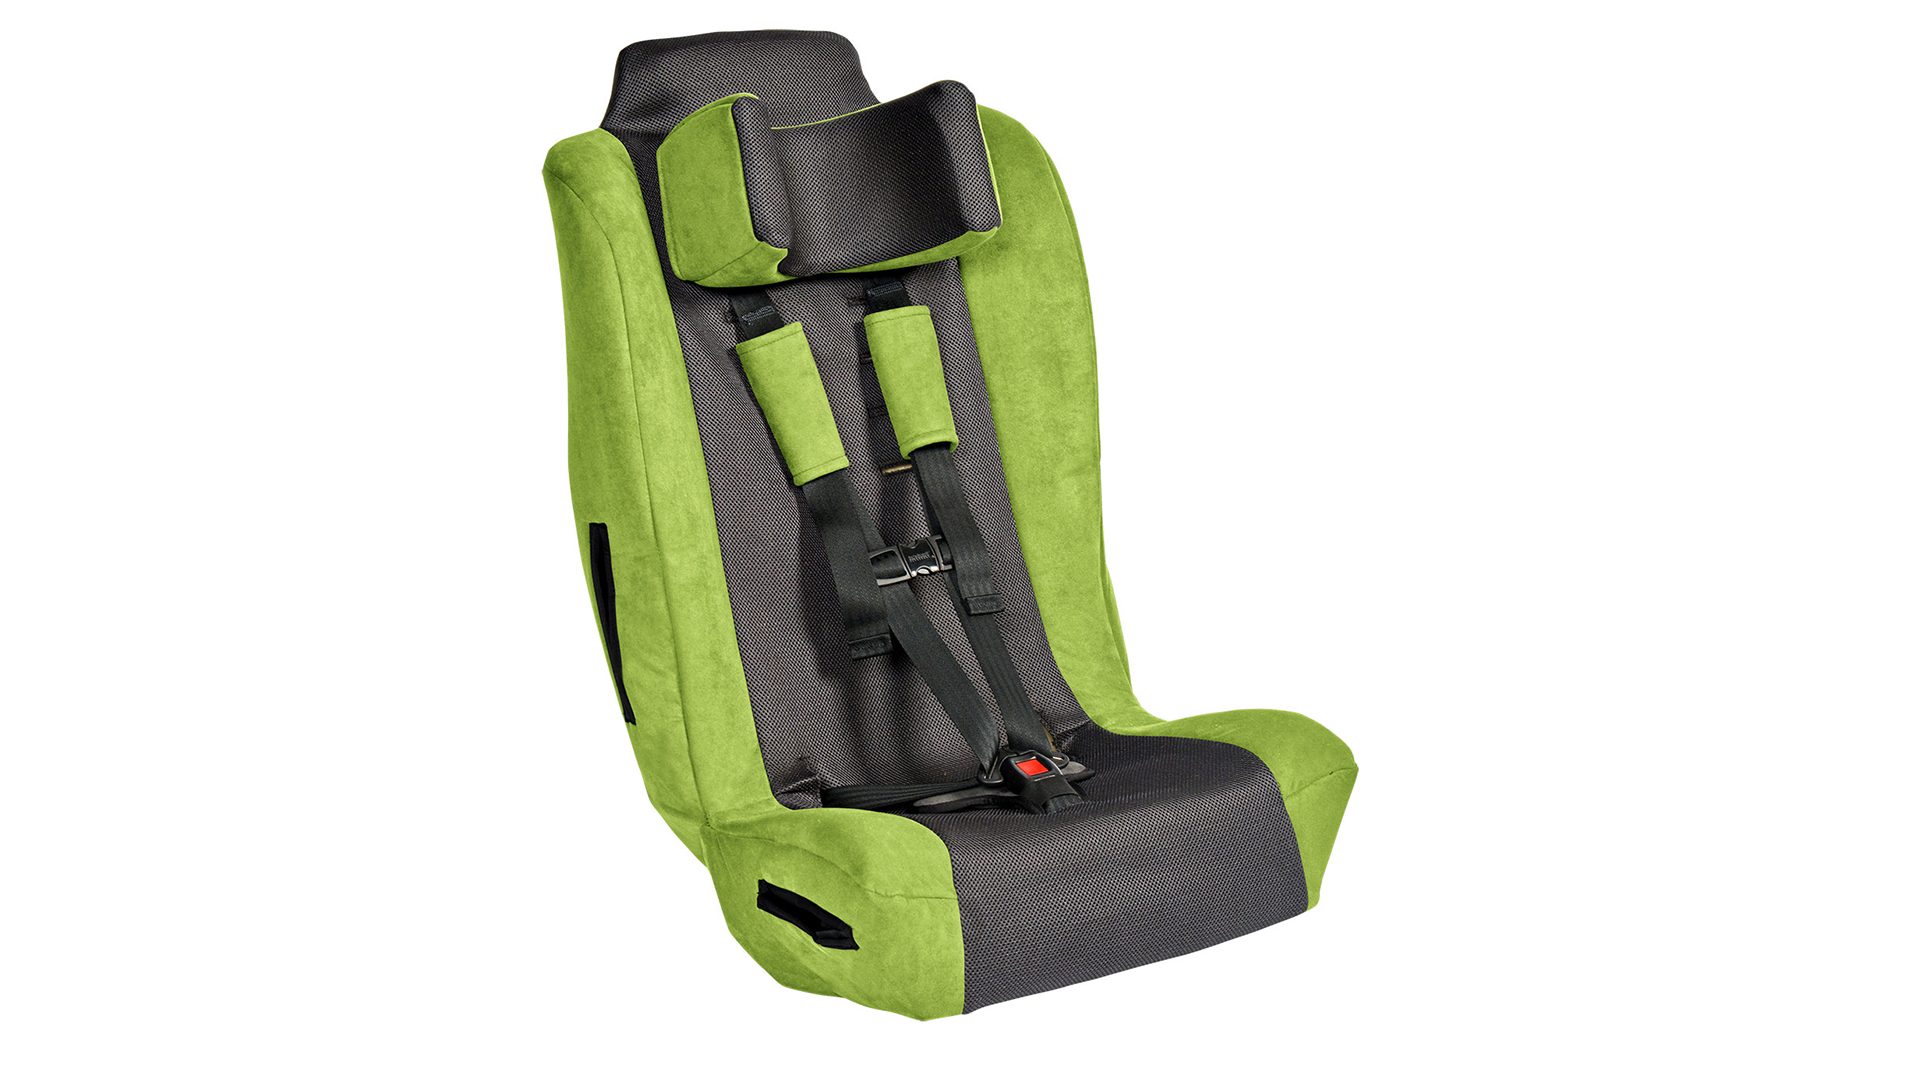 Spirit Car Seat - Inspired by Drive